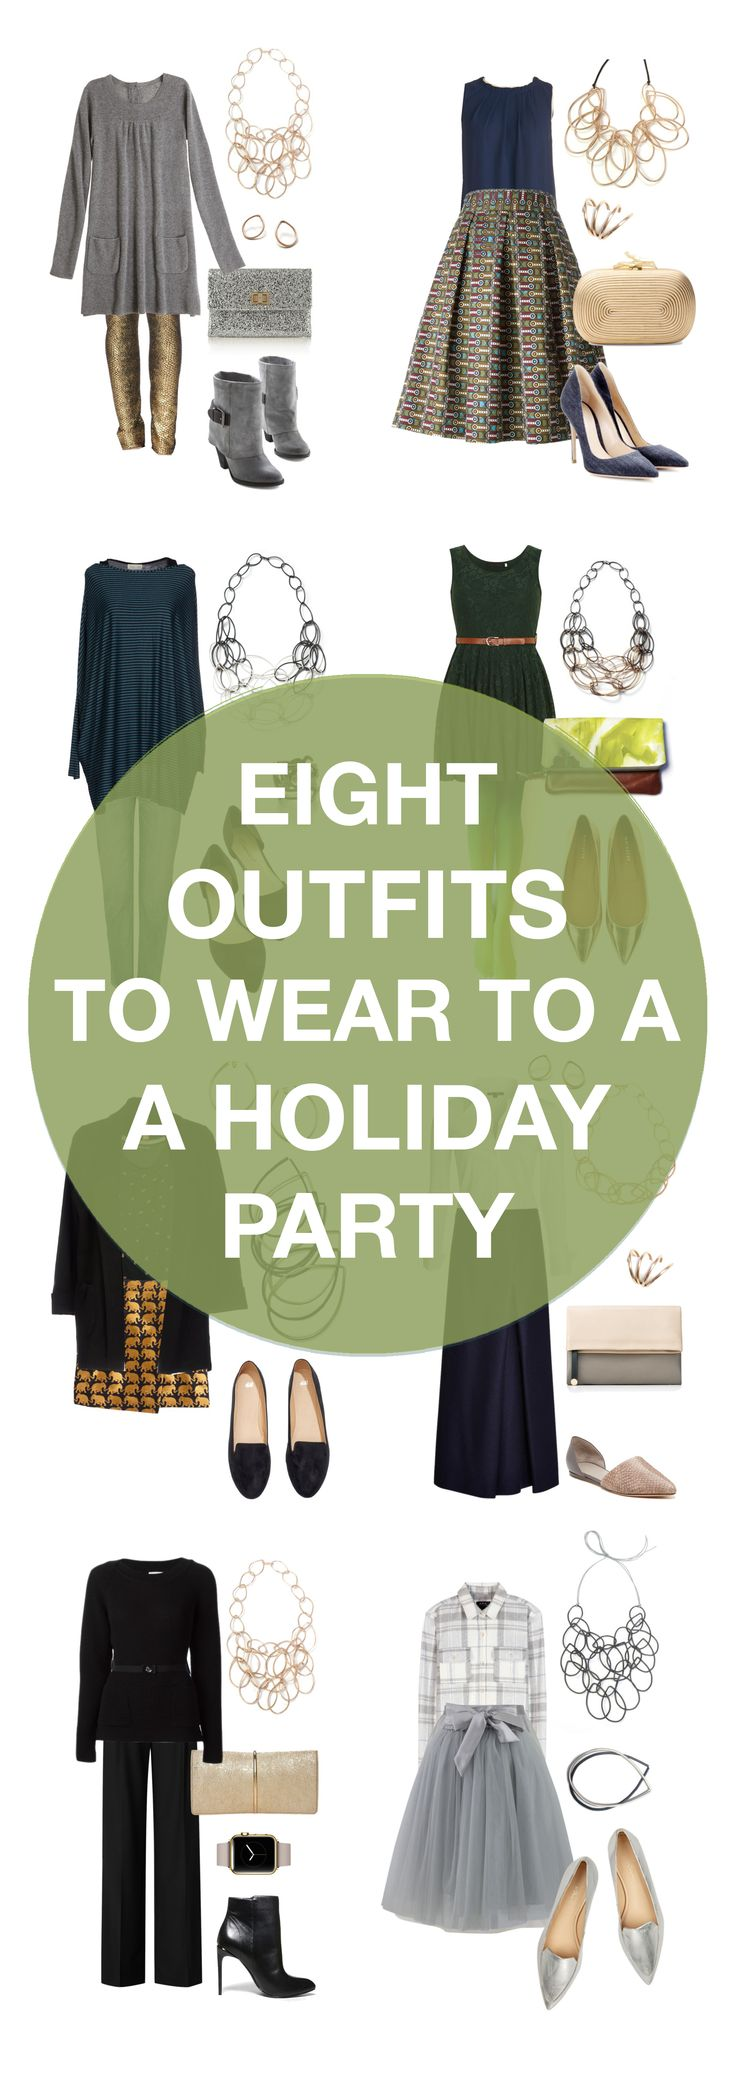 Office christmas party best images collections - 8 Outfit Ideas That Are Perfect For A Holiday Party Office Christmas